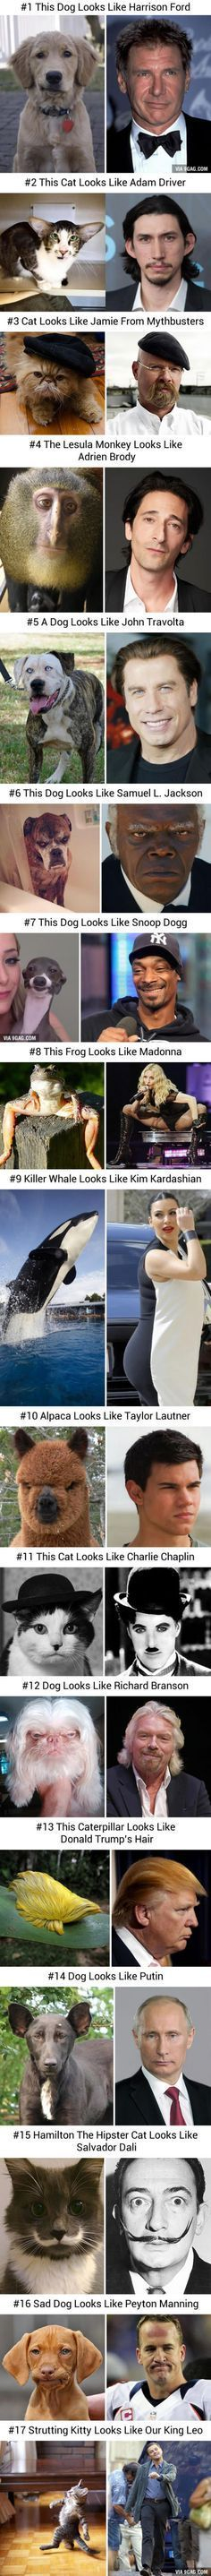 17 Animals That Look Like Celebrities And Famous People http://ibeebz.com